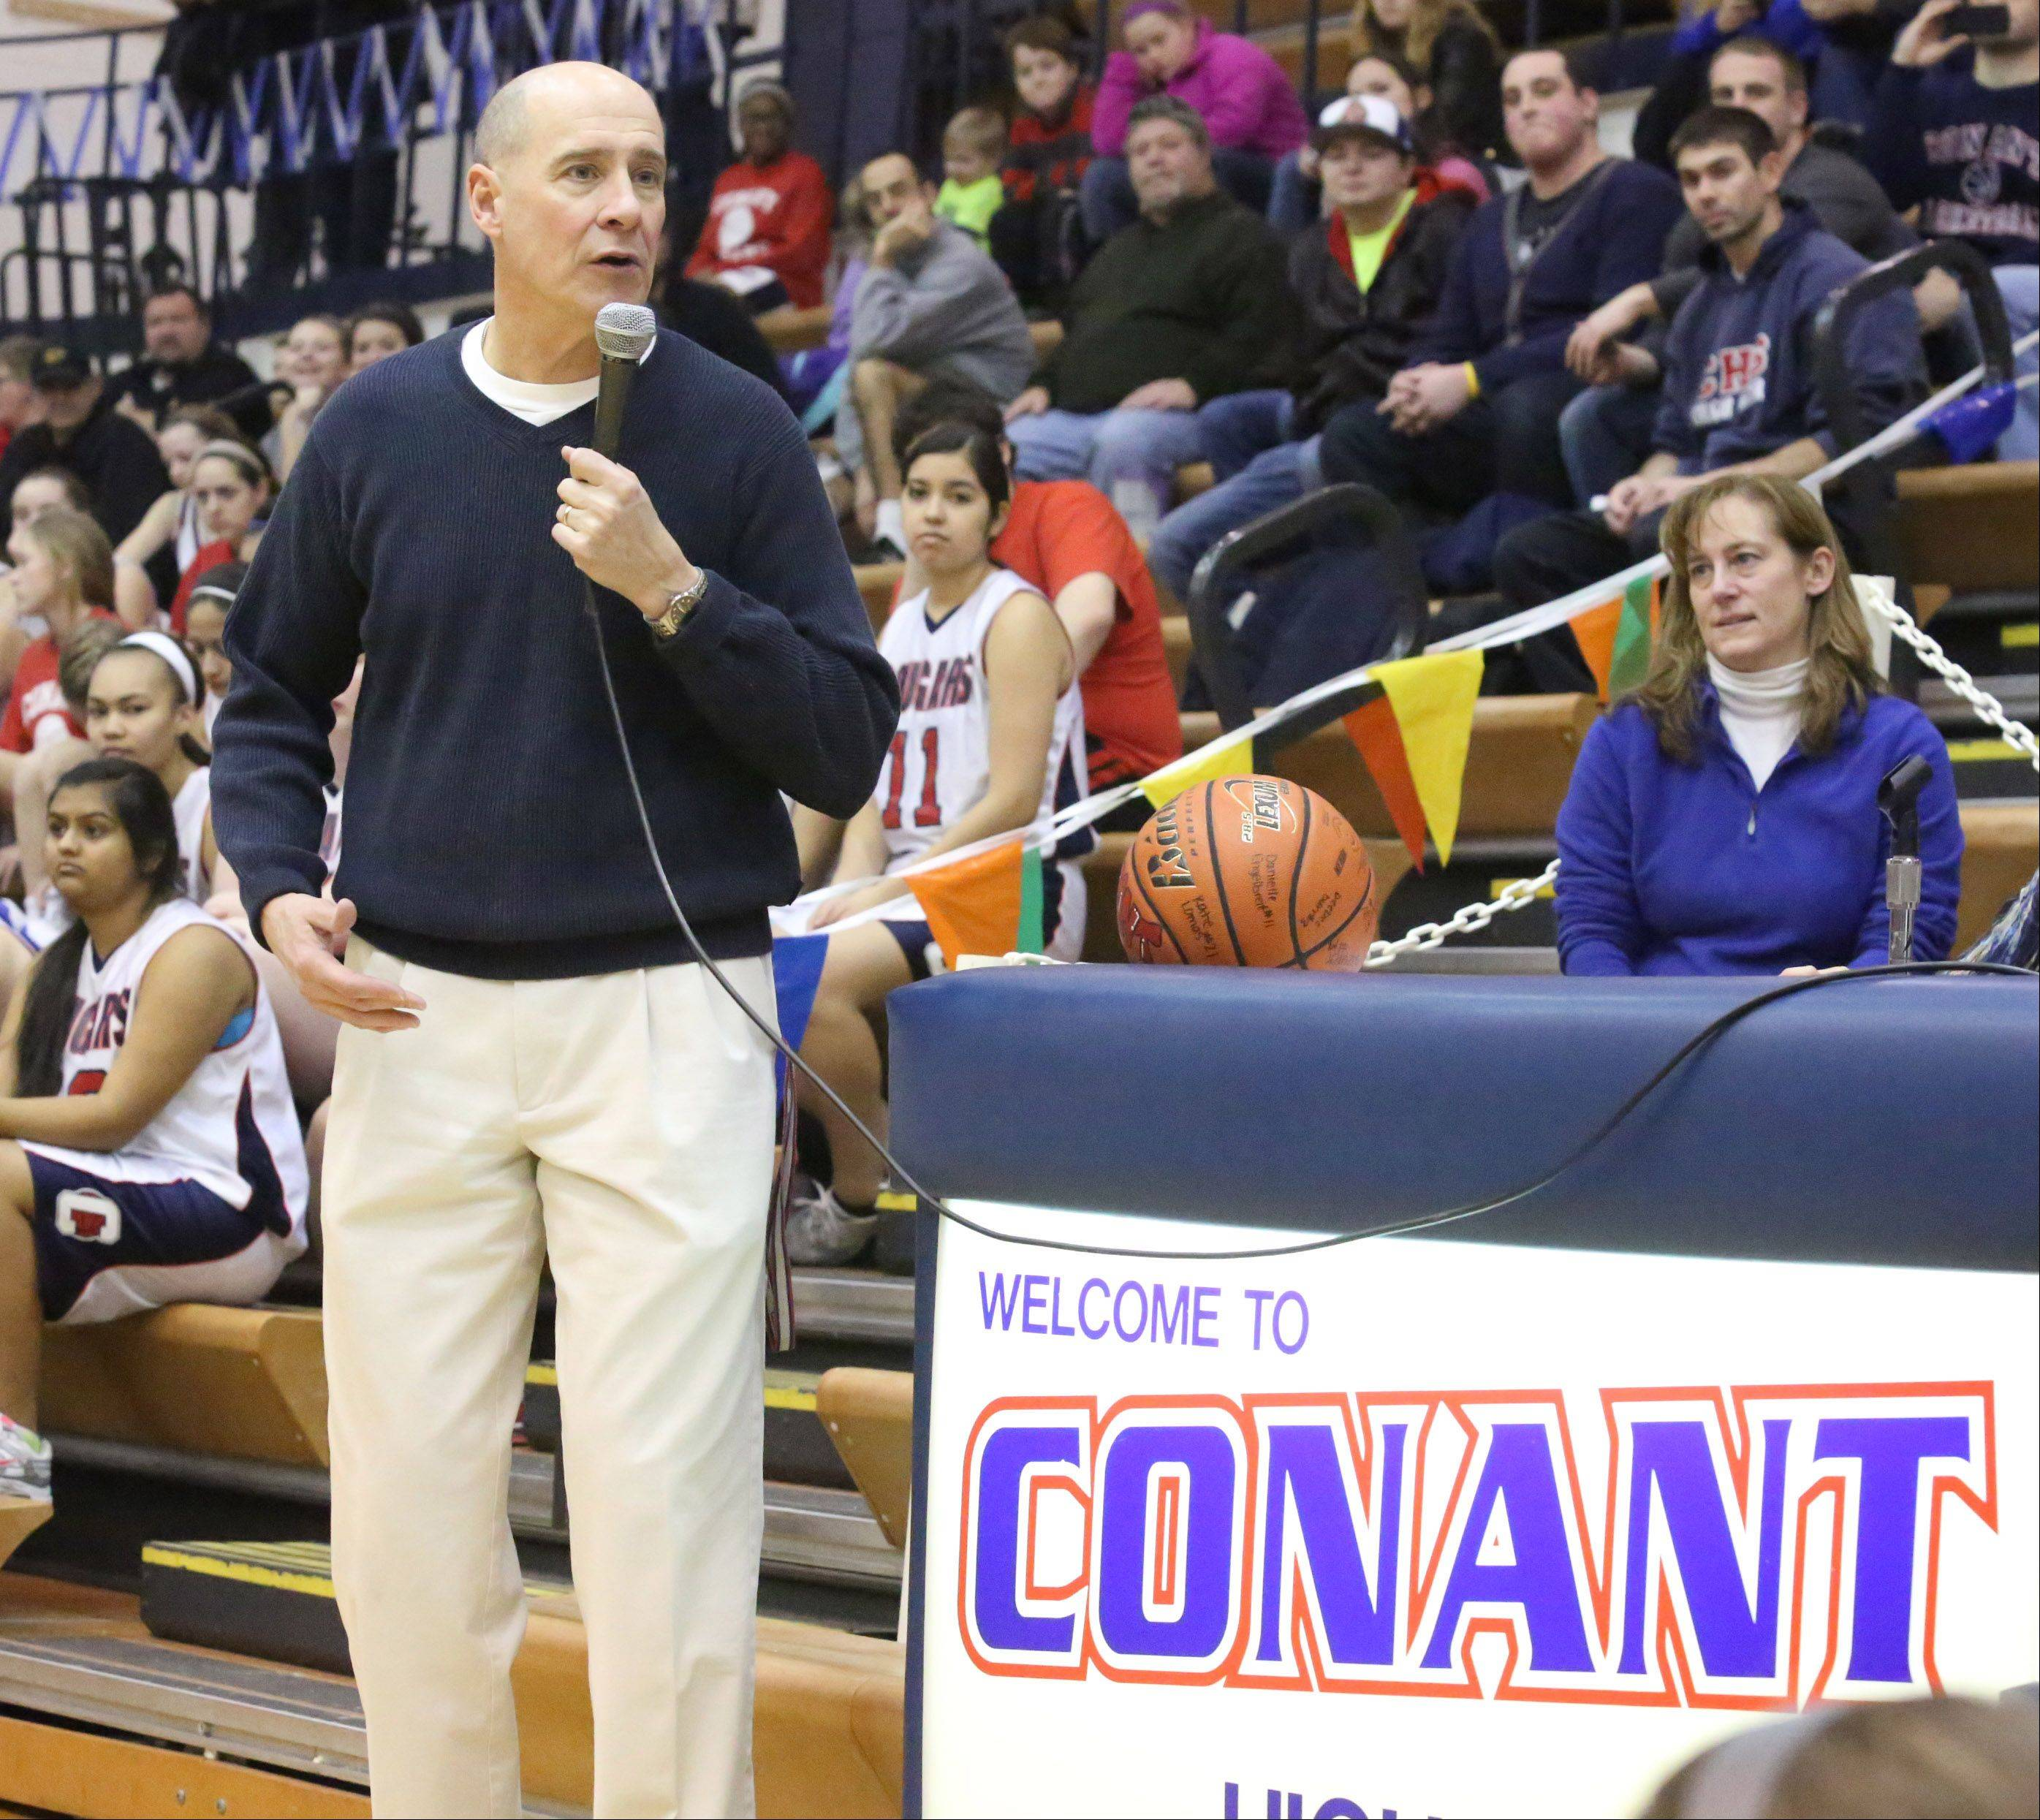 Conant girls basketball coach Dan Travers says a thank you to his players and fans after receiving a plaque from athletic director John Kane on Saturday before a game with Crystal Lake South at Conant.